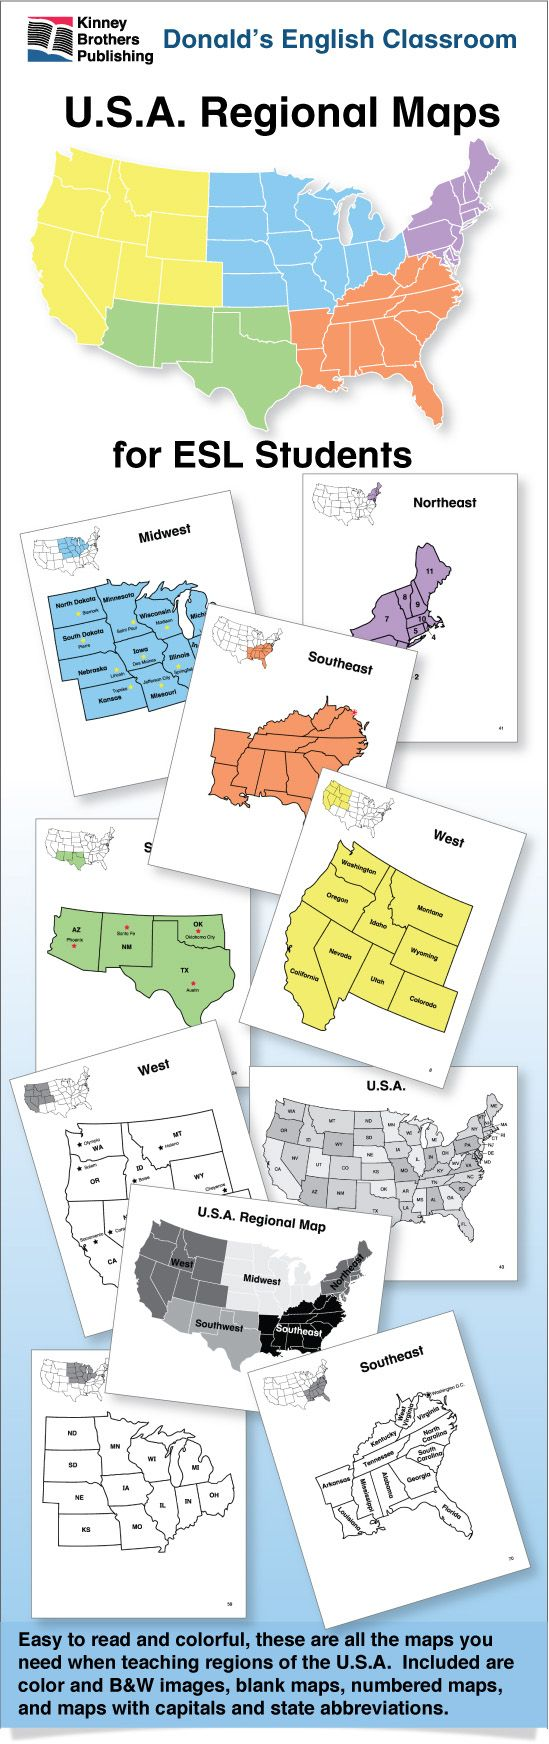 42 best learning geography images on Pinterest School